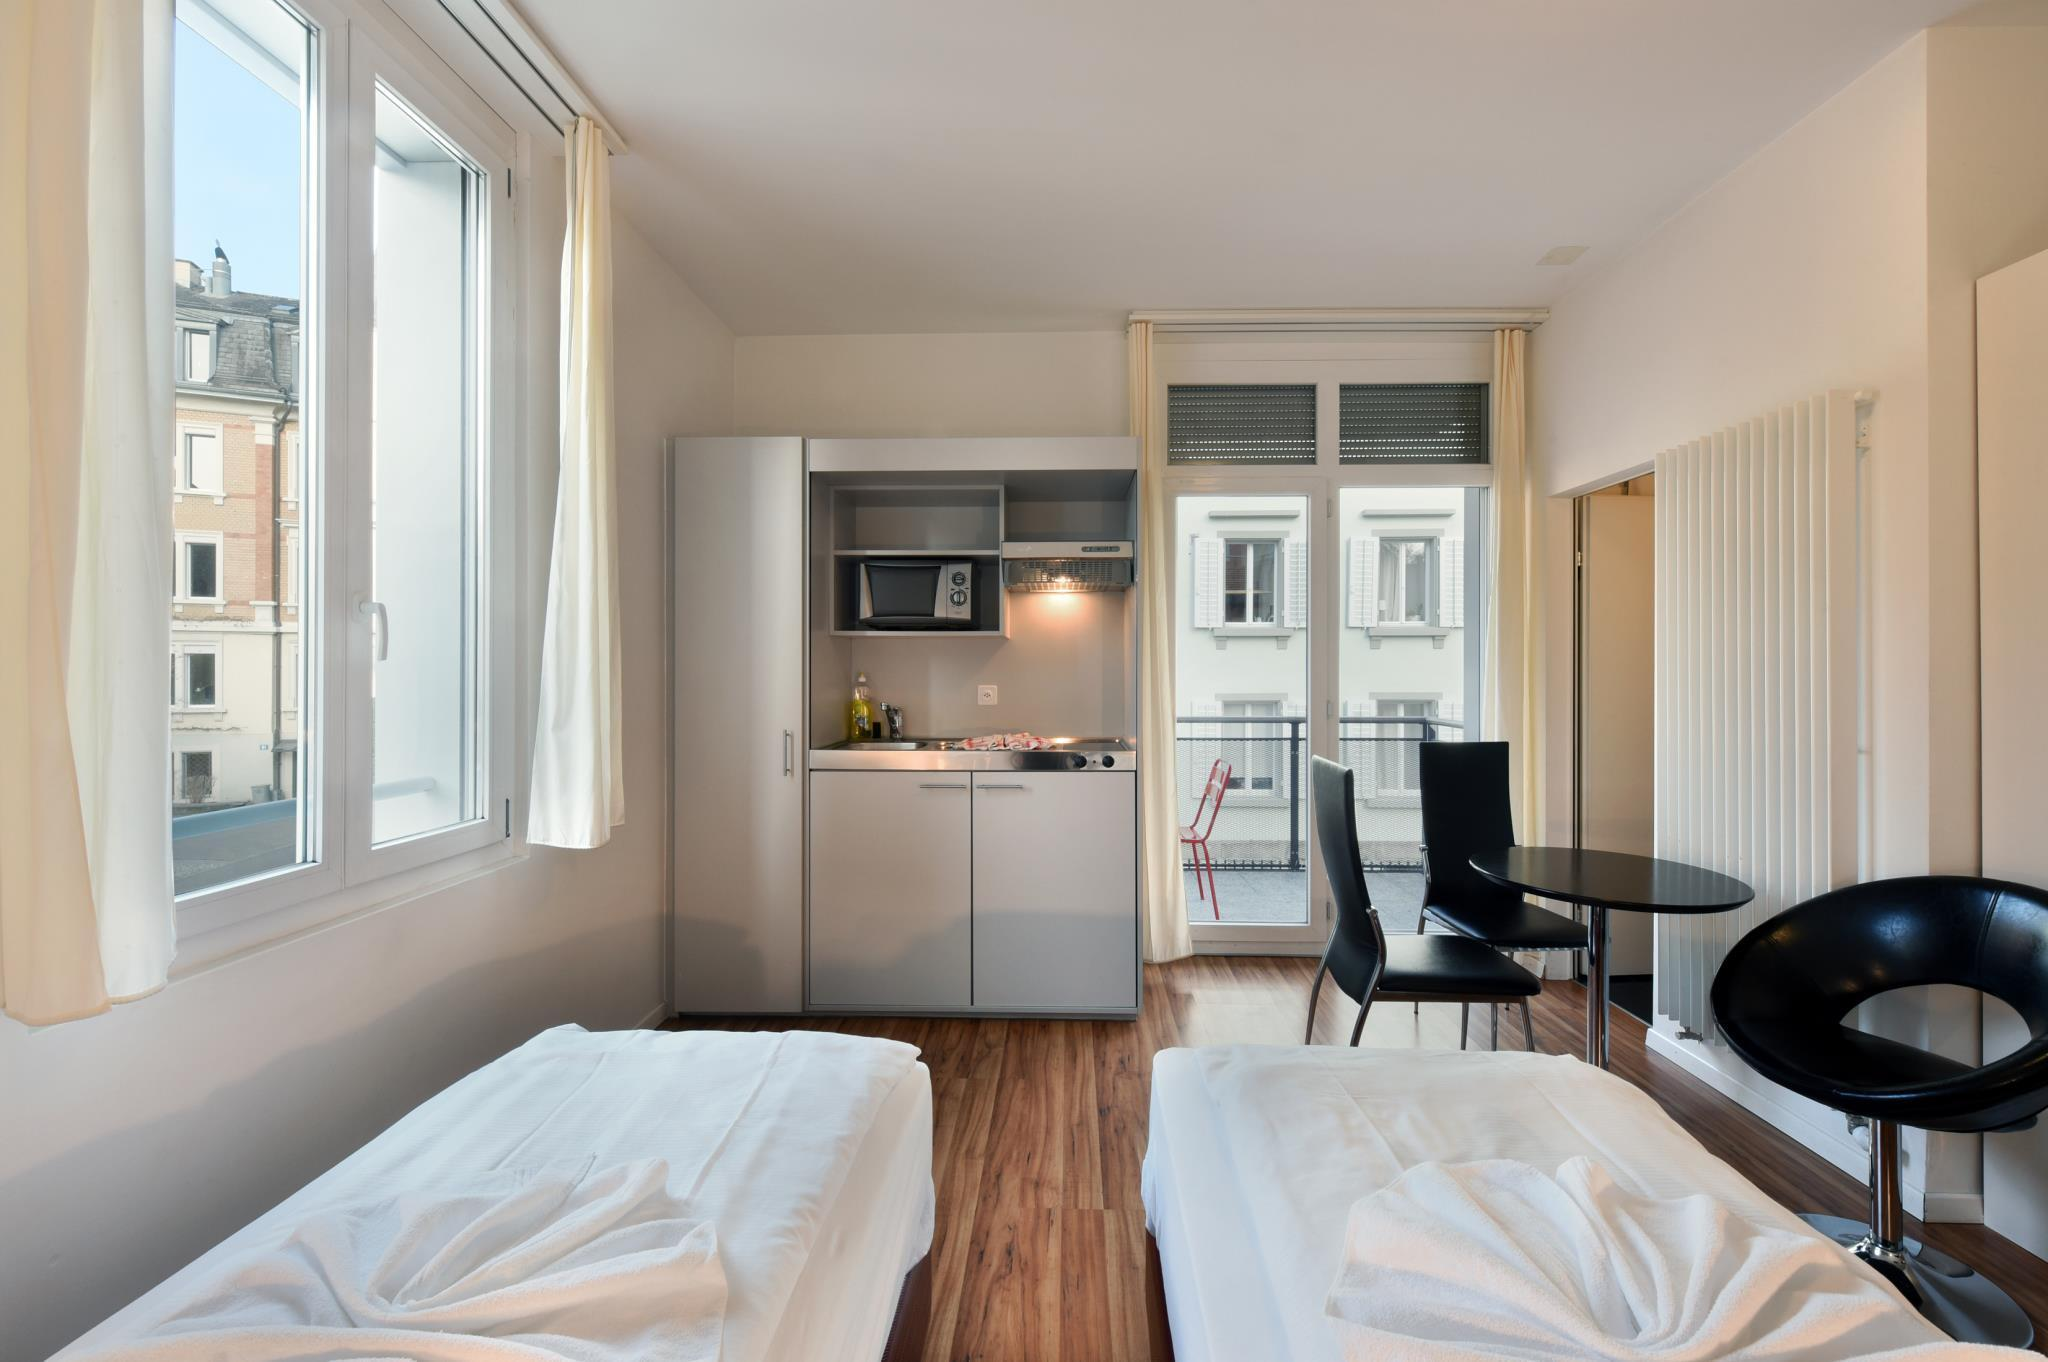 Best Price on California House in Zurich + Reviews!